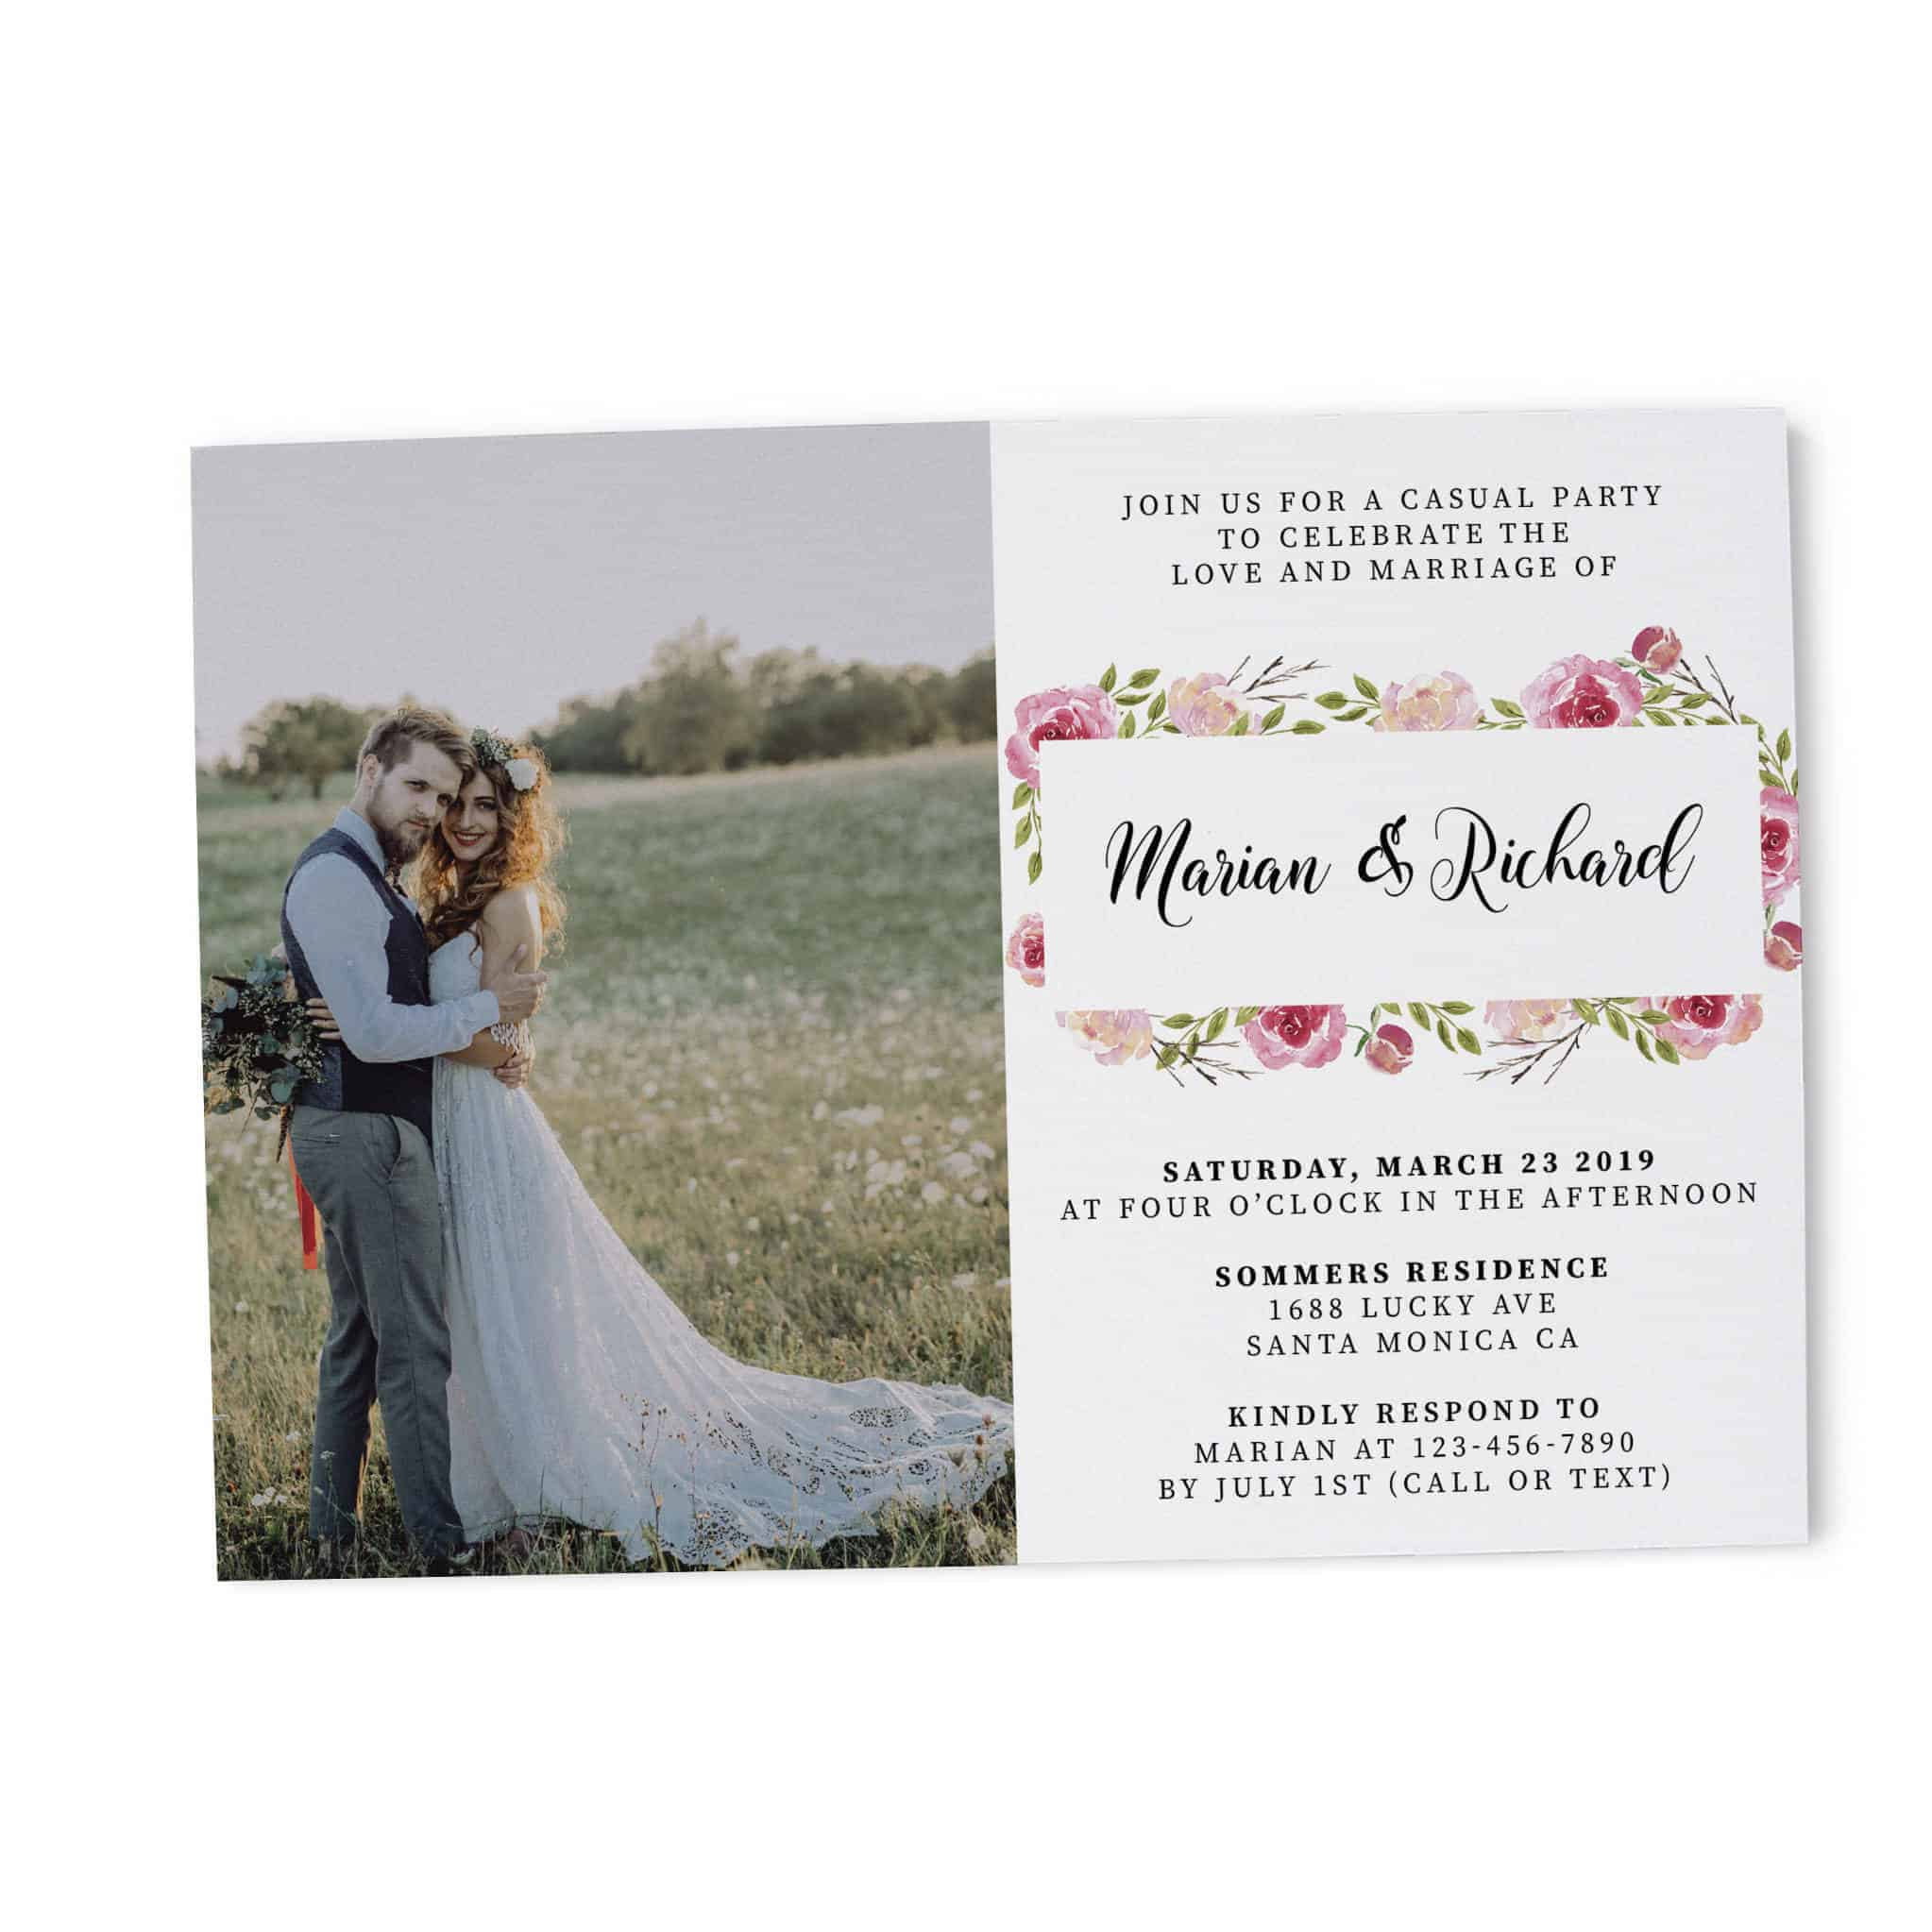 Classy, Floral with Photo, Elopement Reception Party Invitations, Casual Wedding Reception Cards, Printed Printable Wedding Party Card